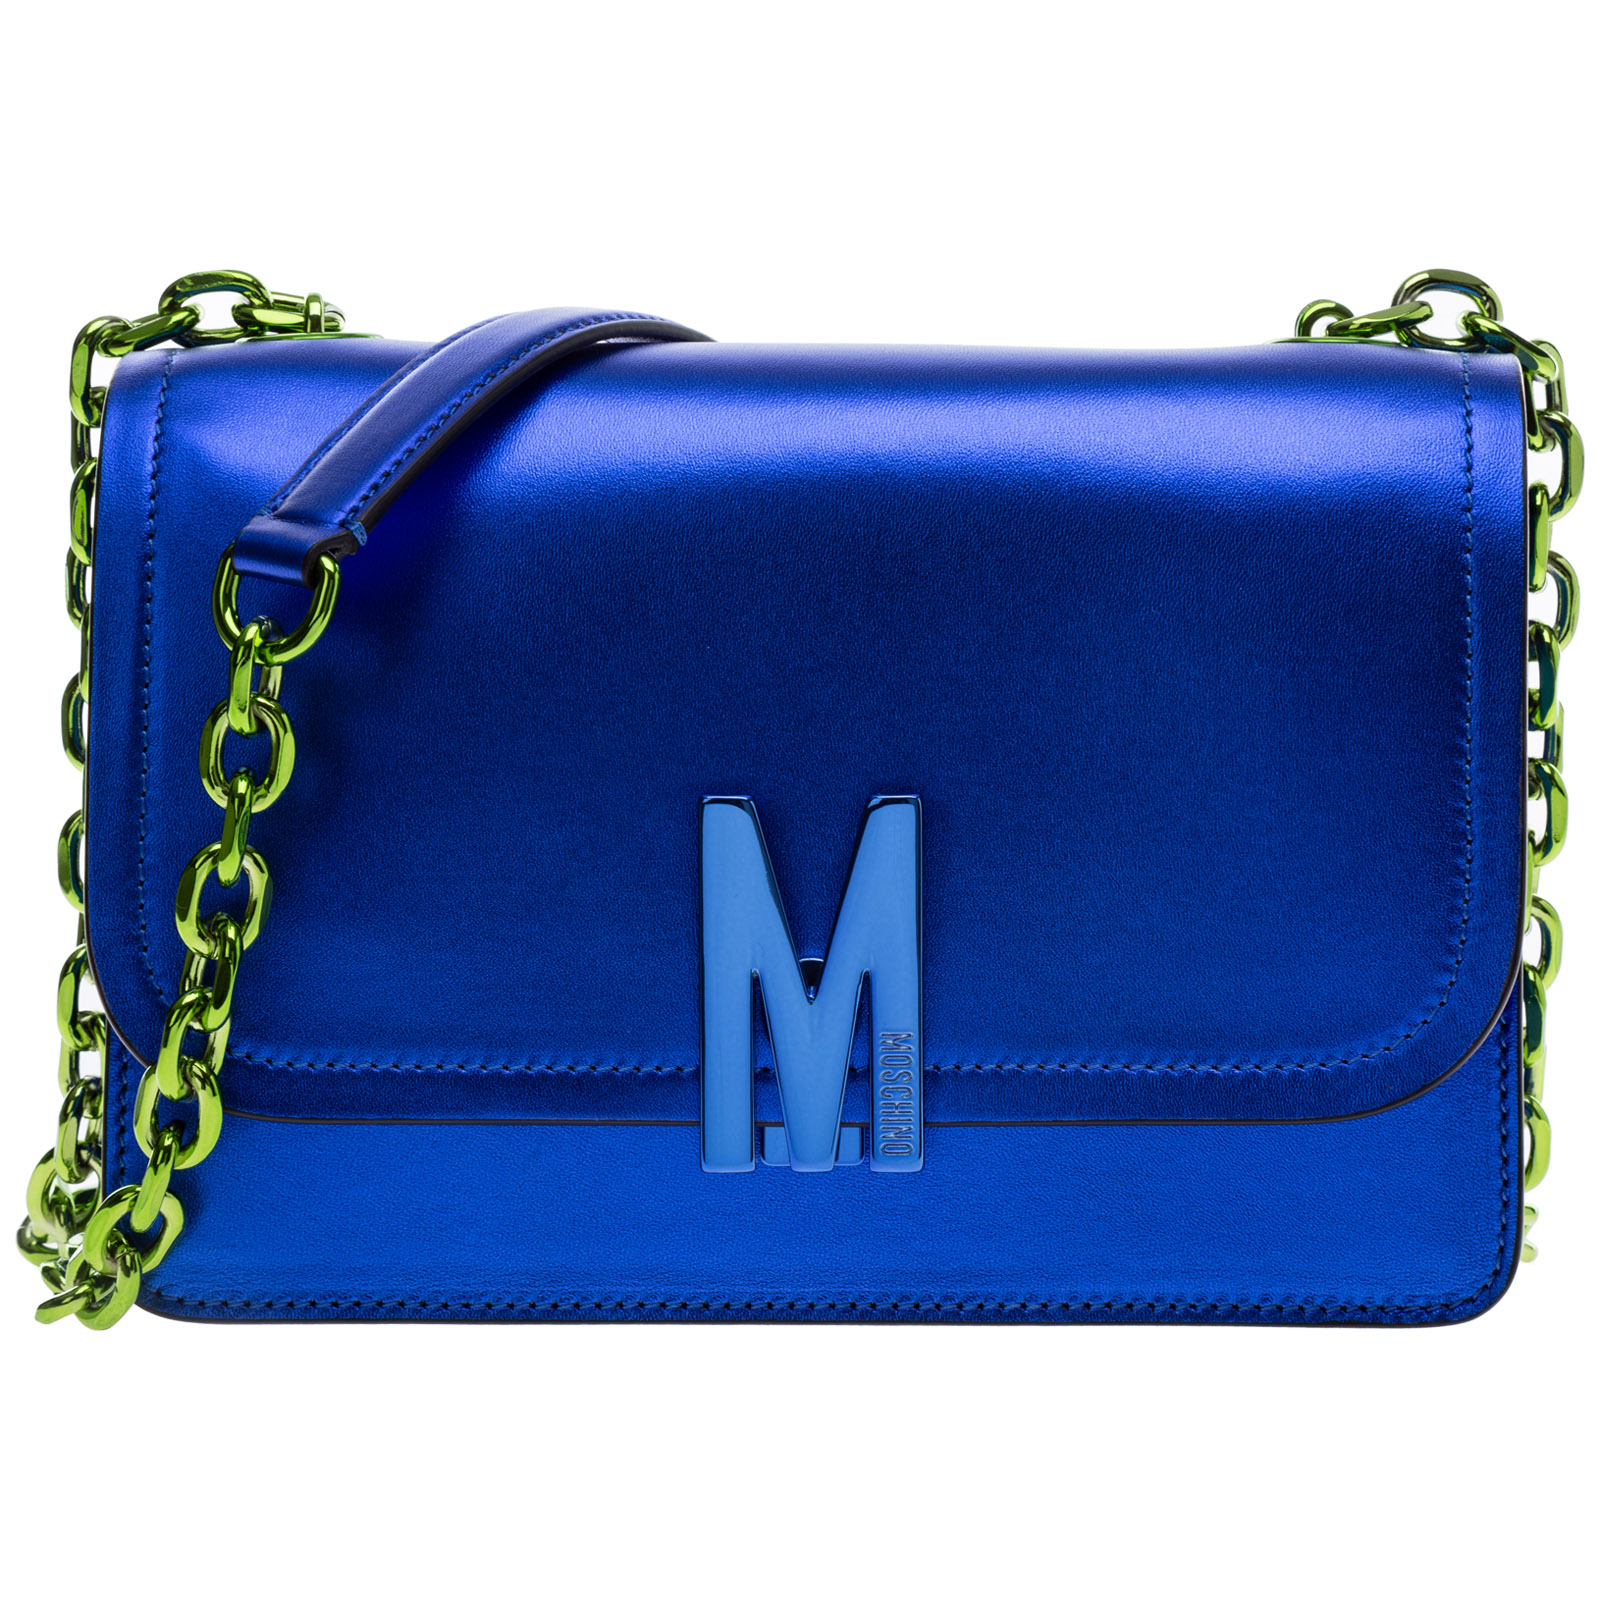 Moschino Shoulder bags WOMEN'S LEATHER SHOULDER BAG M